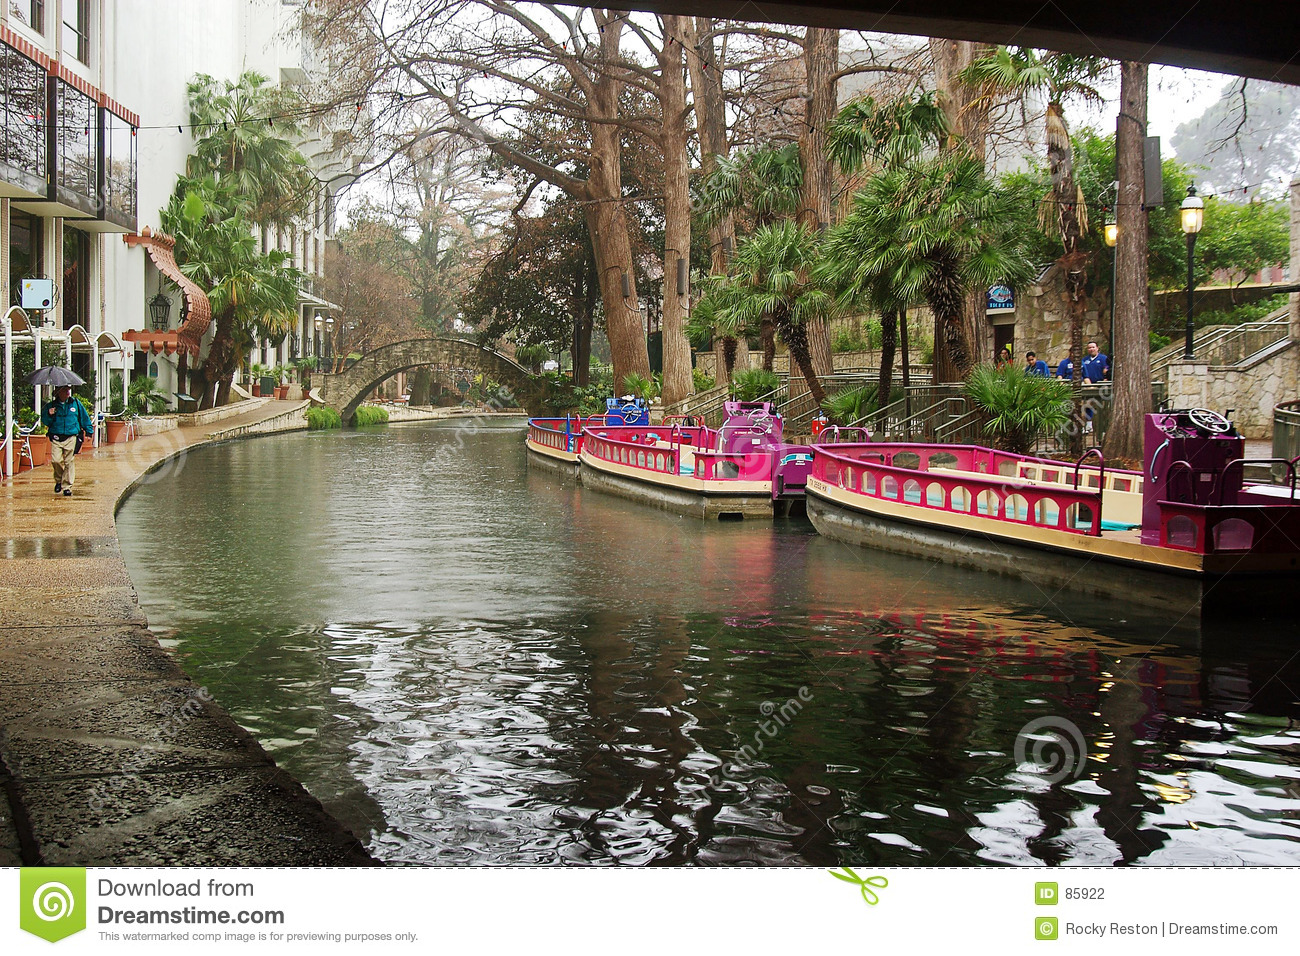 San antonio łodzi riverwalk